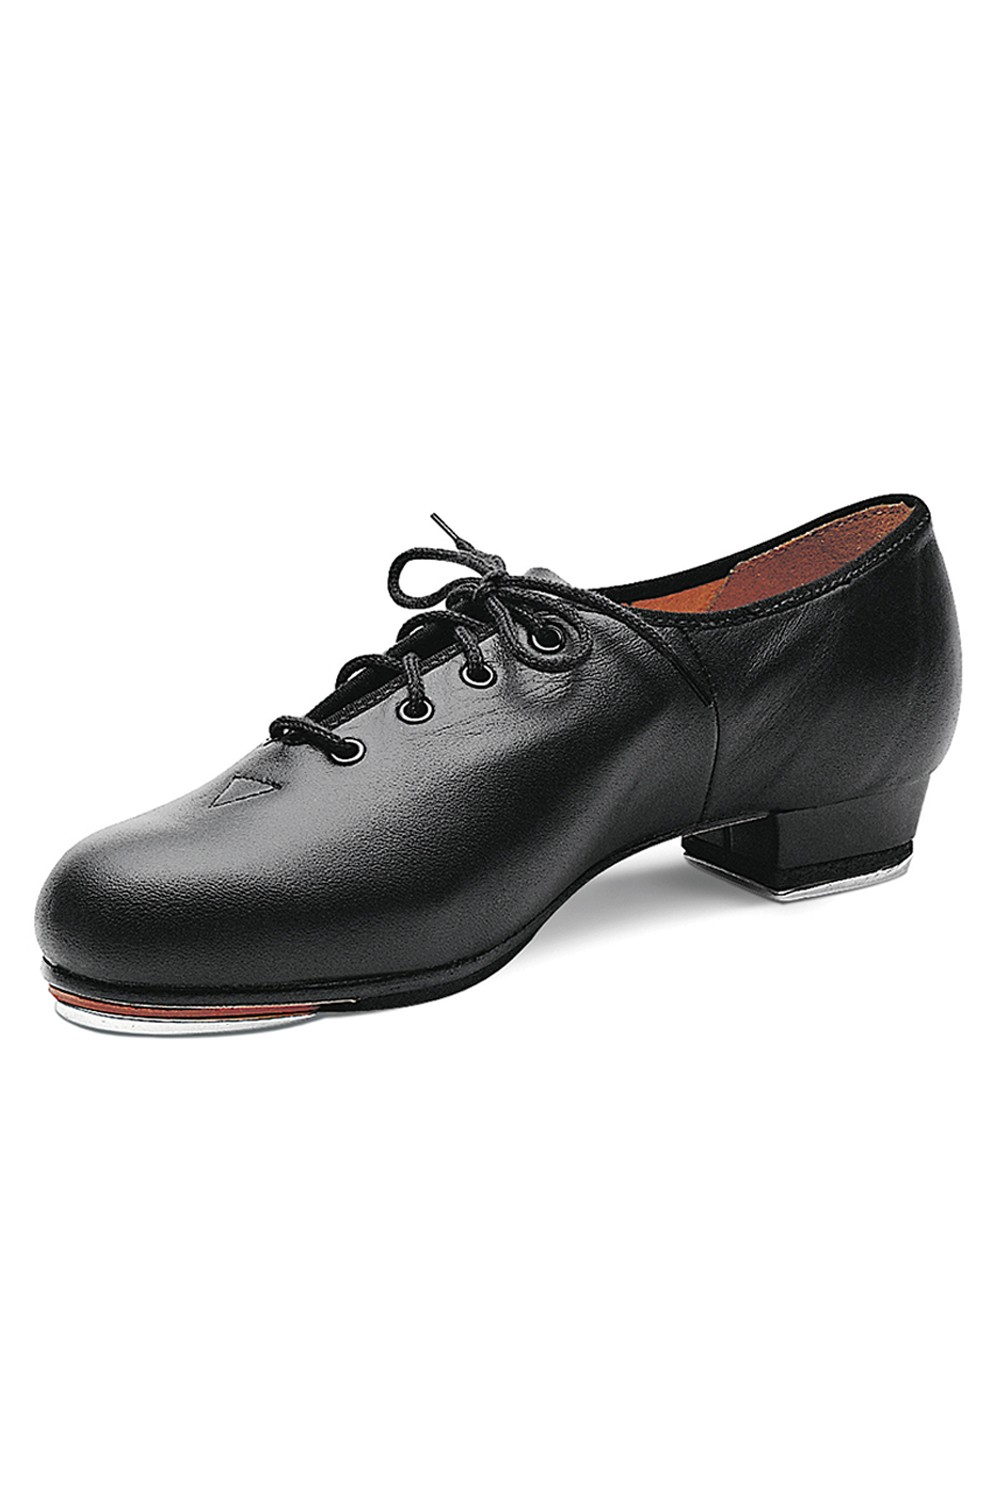 Jazz Tap - Men's Men's Tap Shoes